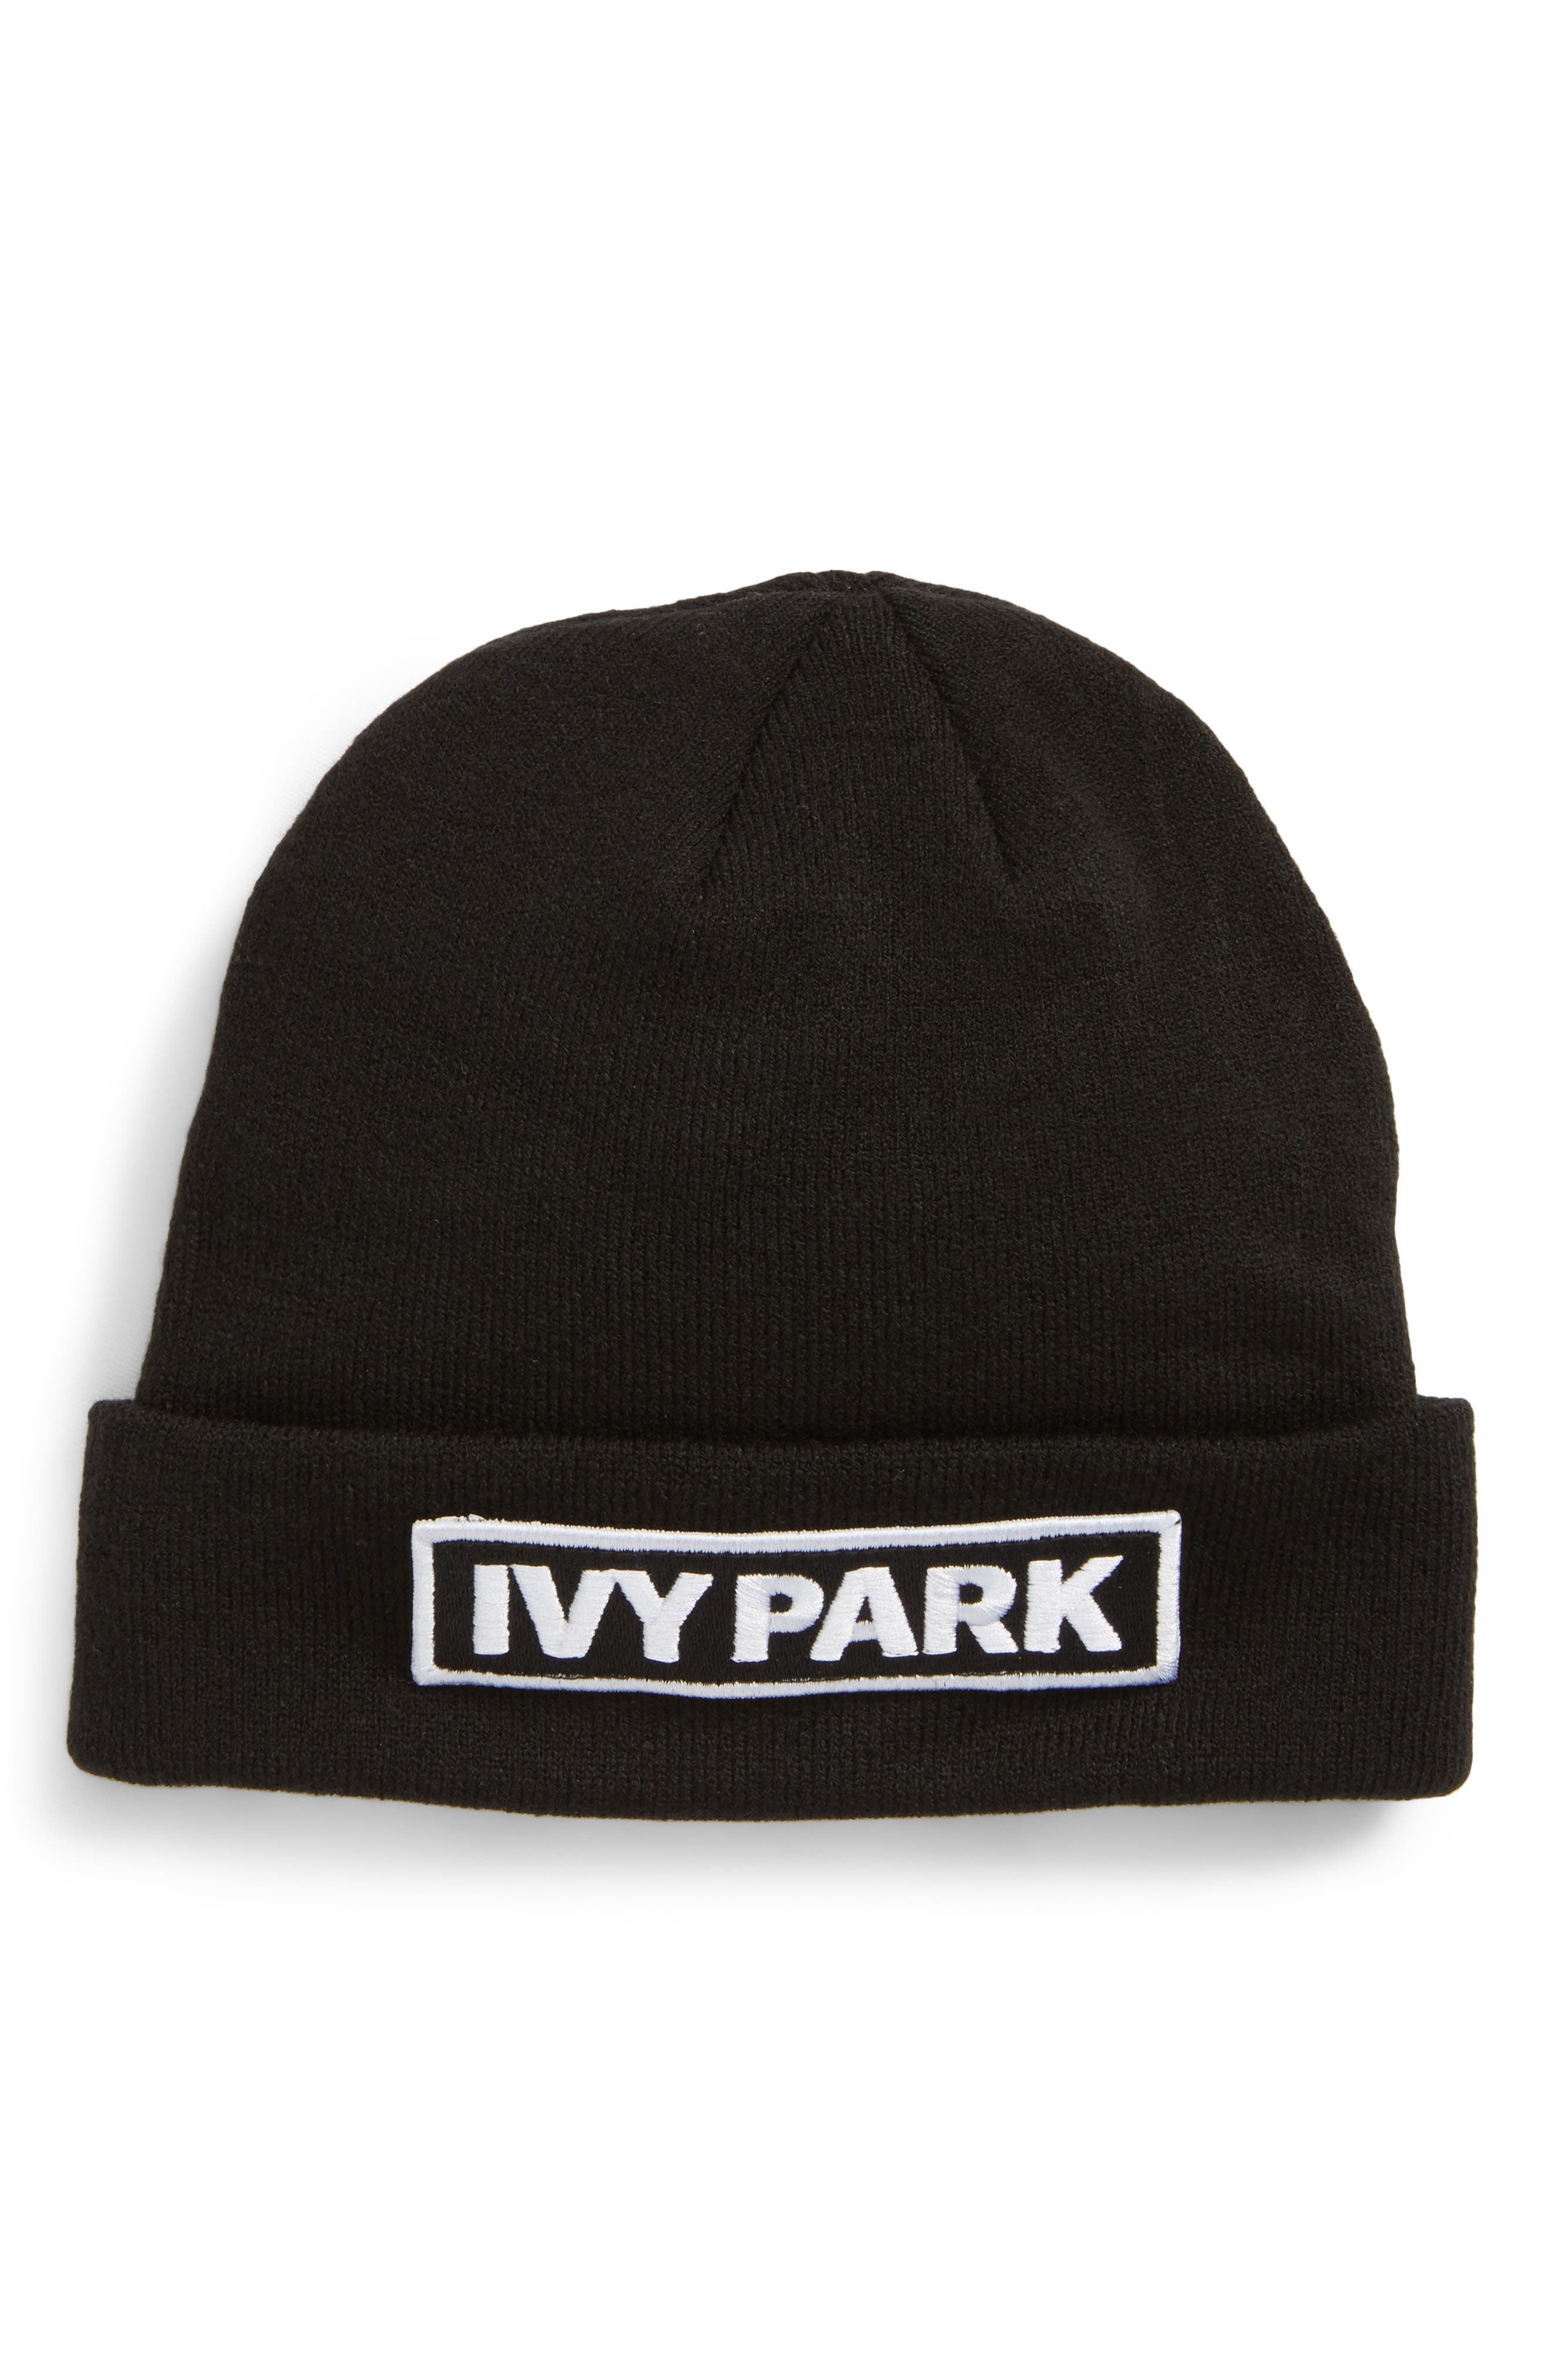 IVY PARK® Embroidered Patch Beanie